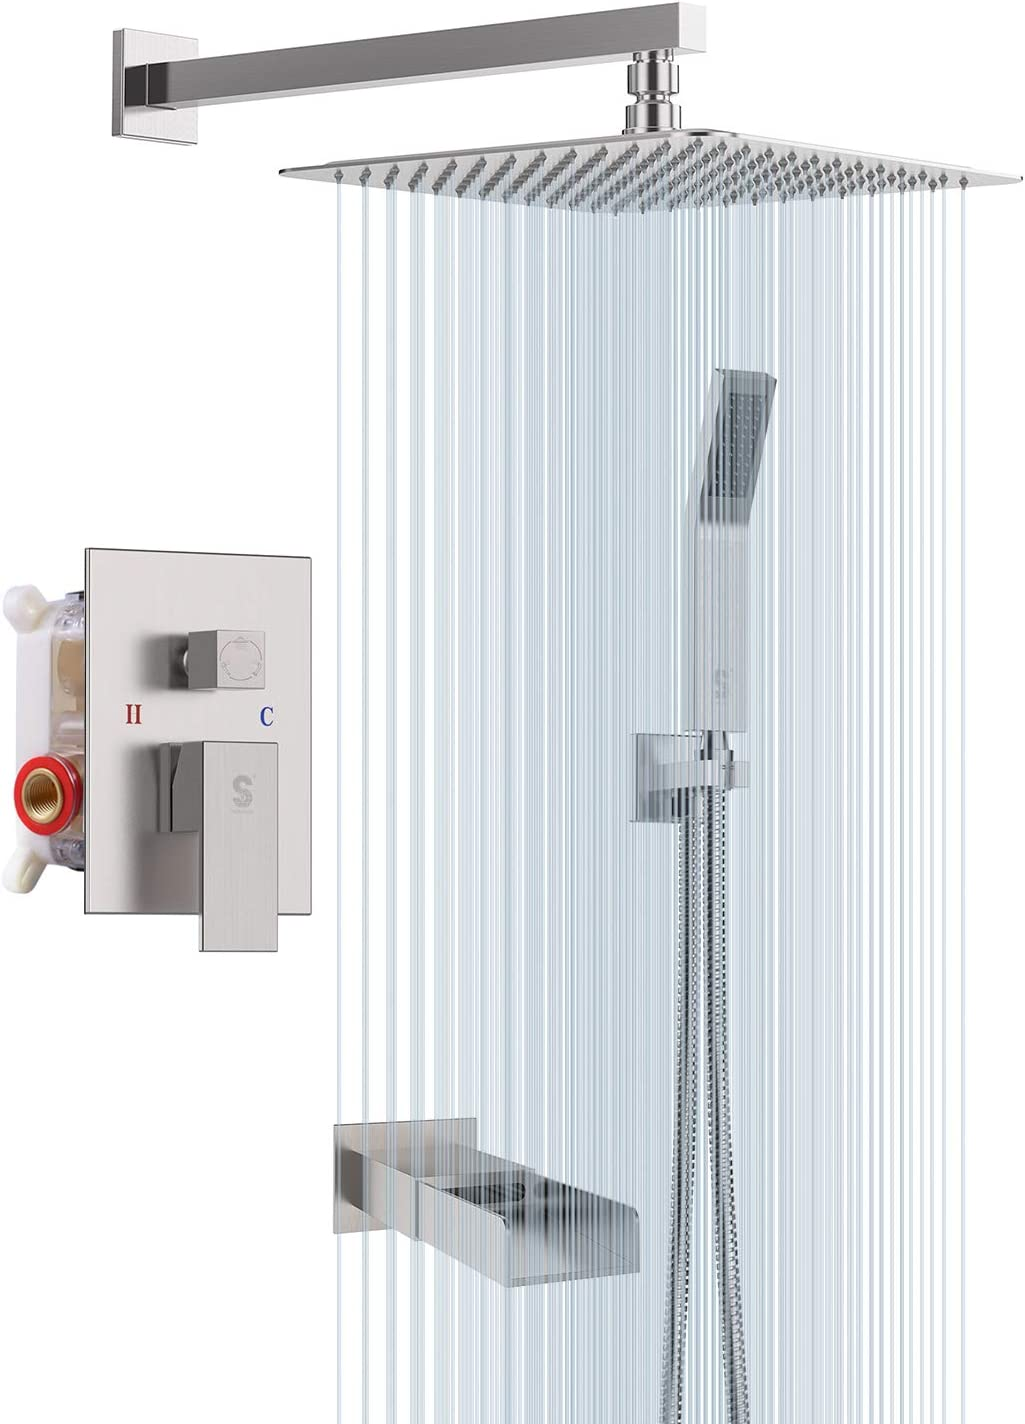 SR SUN RISE Bathroom Luxury Rain Mixer Shower Tub Spout Combo Set Wall Mounted 12 Inches Rainfall Shower Head System Brushed Nickel